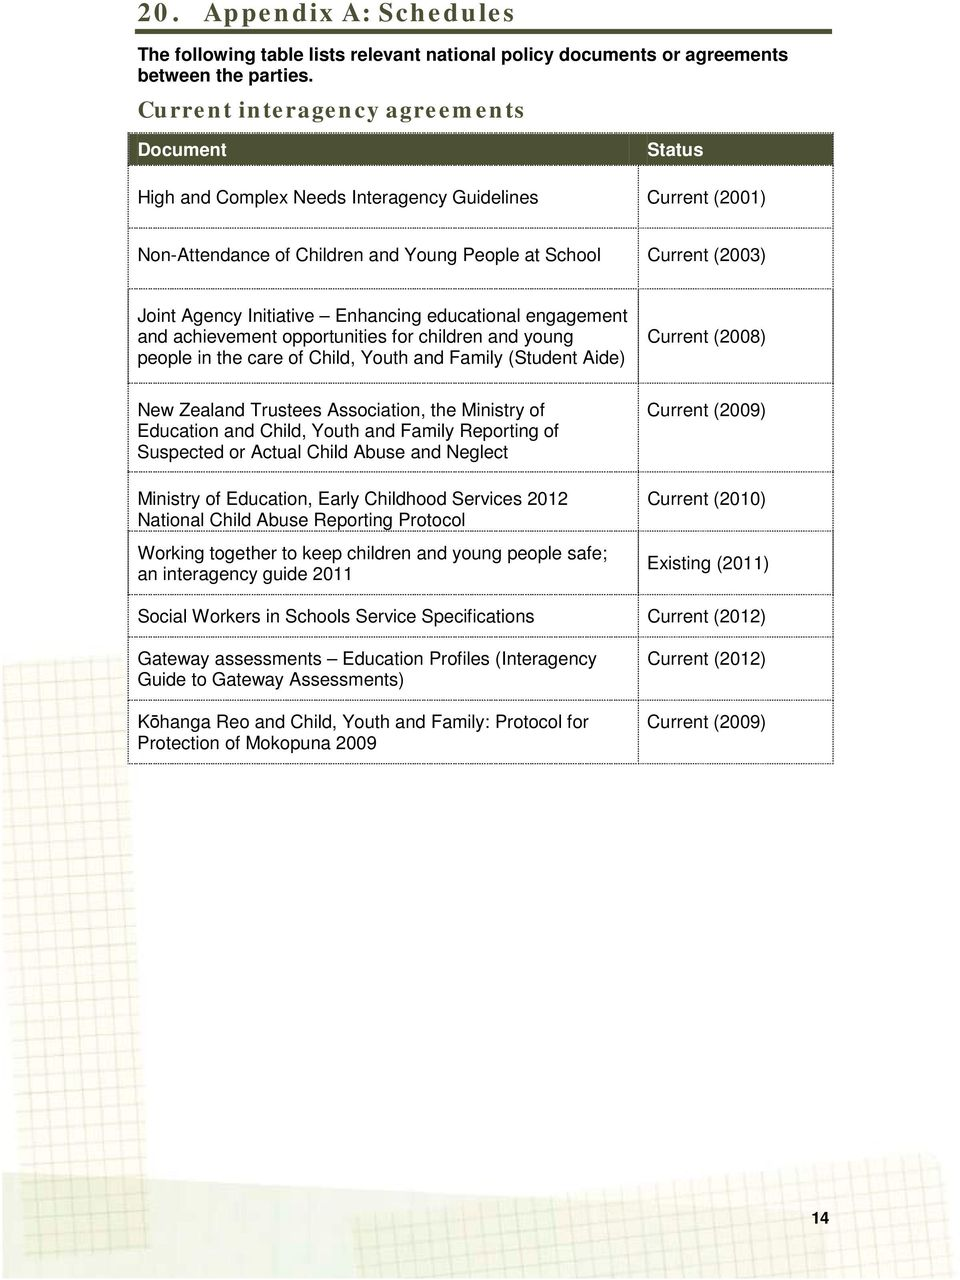 Initiative Enhancing educational engagement and achievement opportunities for children and young people in the care of Child, Youth and Family (Student Aide) Current (2008) New Zealand Trustees